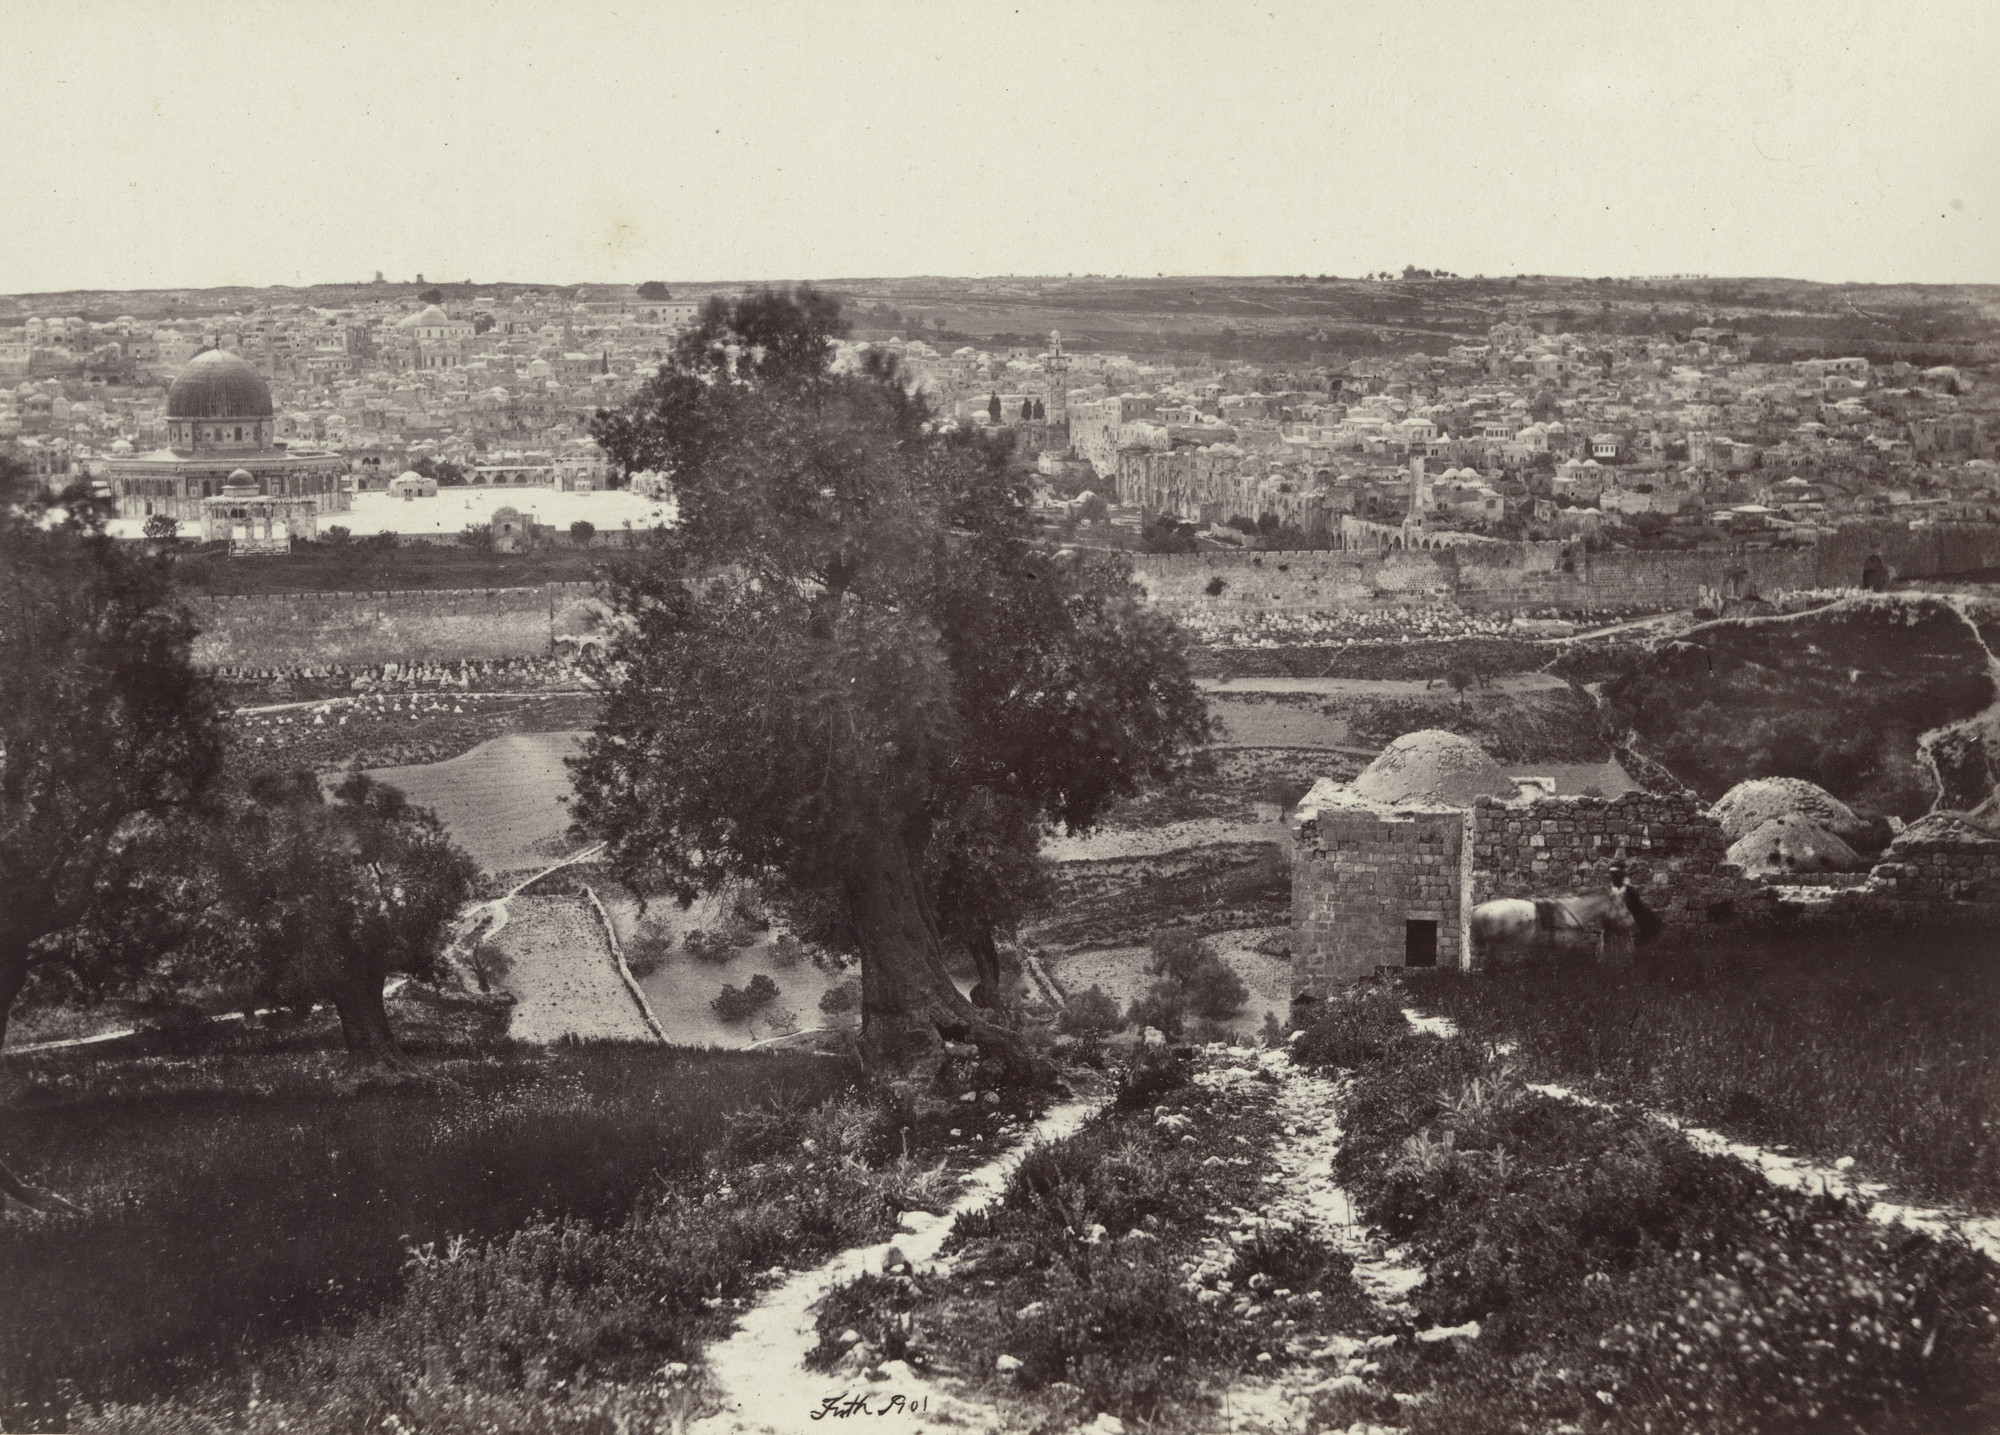 Francis Frith. Jerusalem from The Mount of Olives (Plate 16). 1858-60